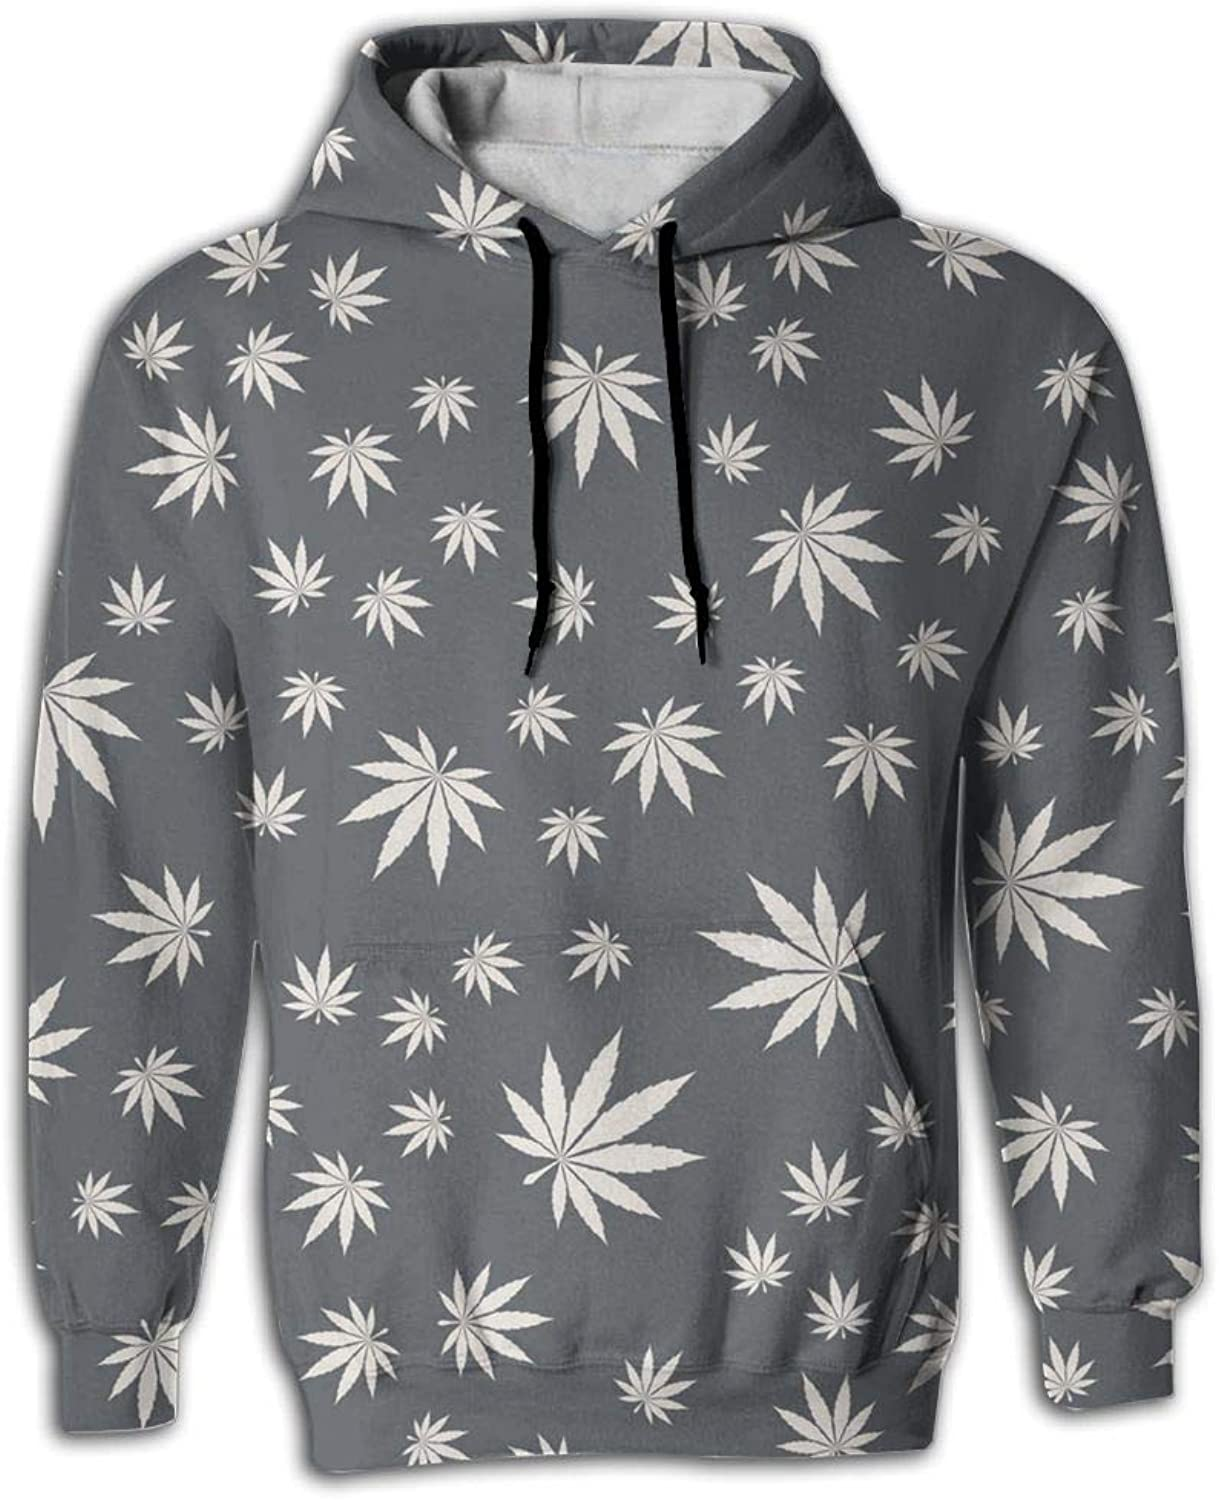 Nice Big Pockets Suit Vegan Eco Natural Cannabis White Hoodie